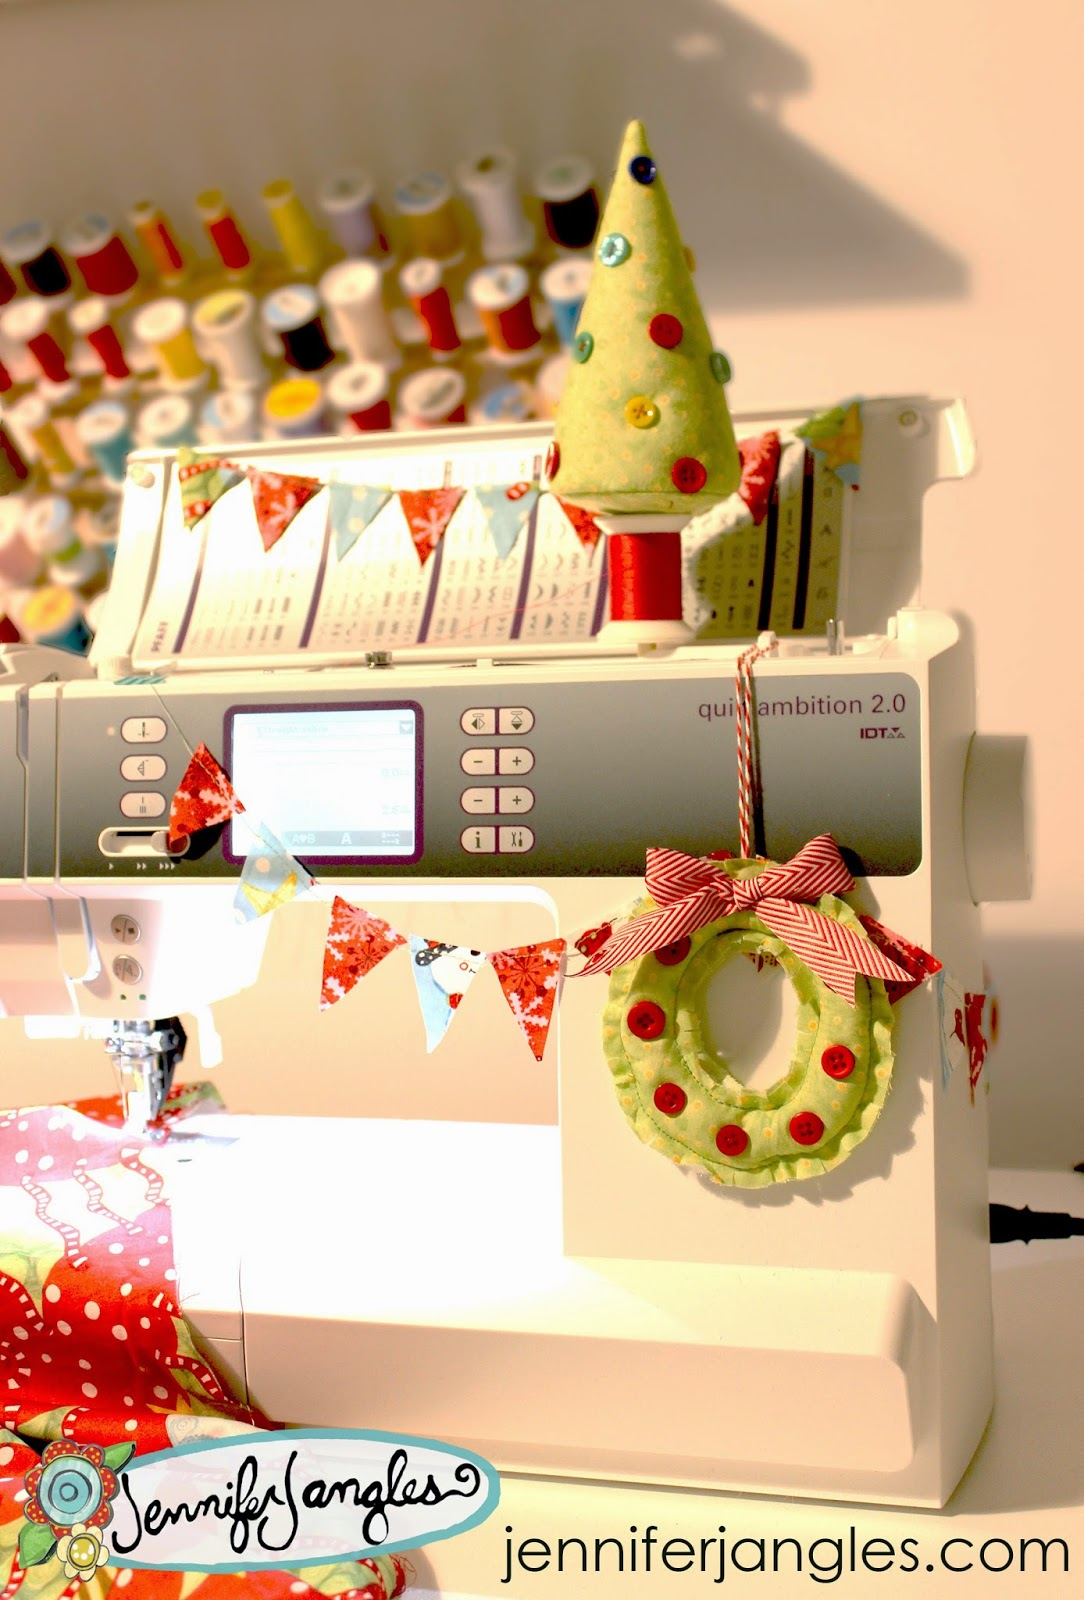 sewing machine decorations holiday project 1 - Christmas Decorations To Make With Sewing Machine